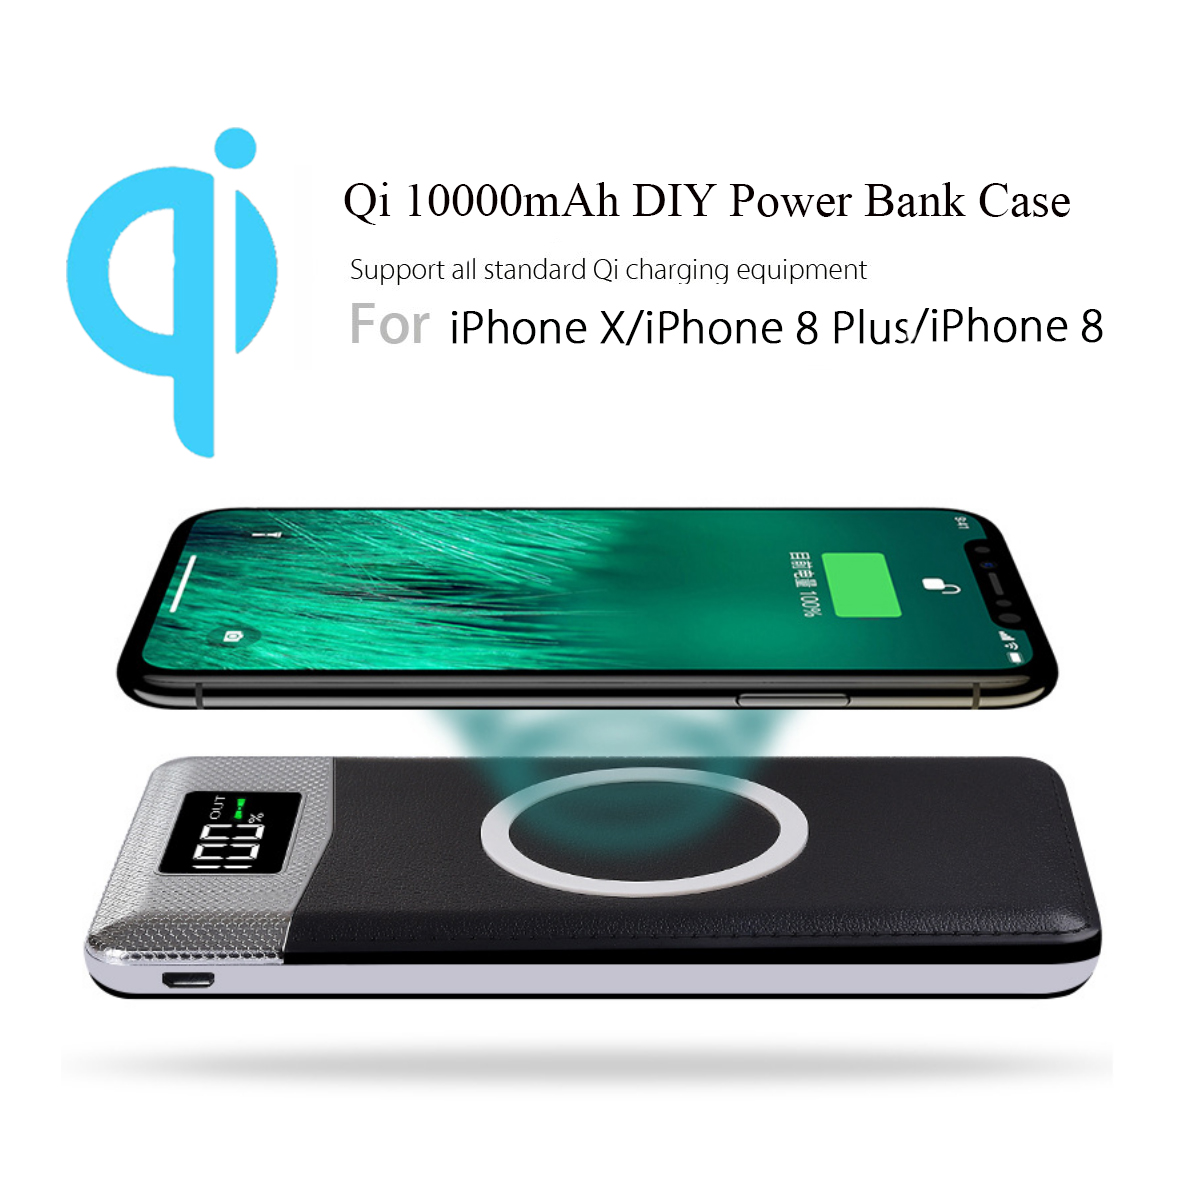 Diy Power Bank 1000mah Qi Wireless Charging Charger Power Bank Diy Plastic Case Case With Flashlight